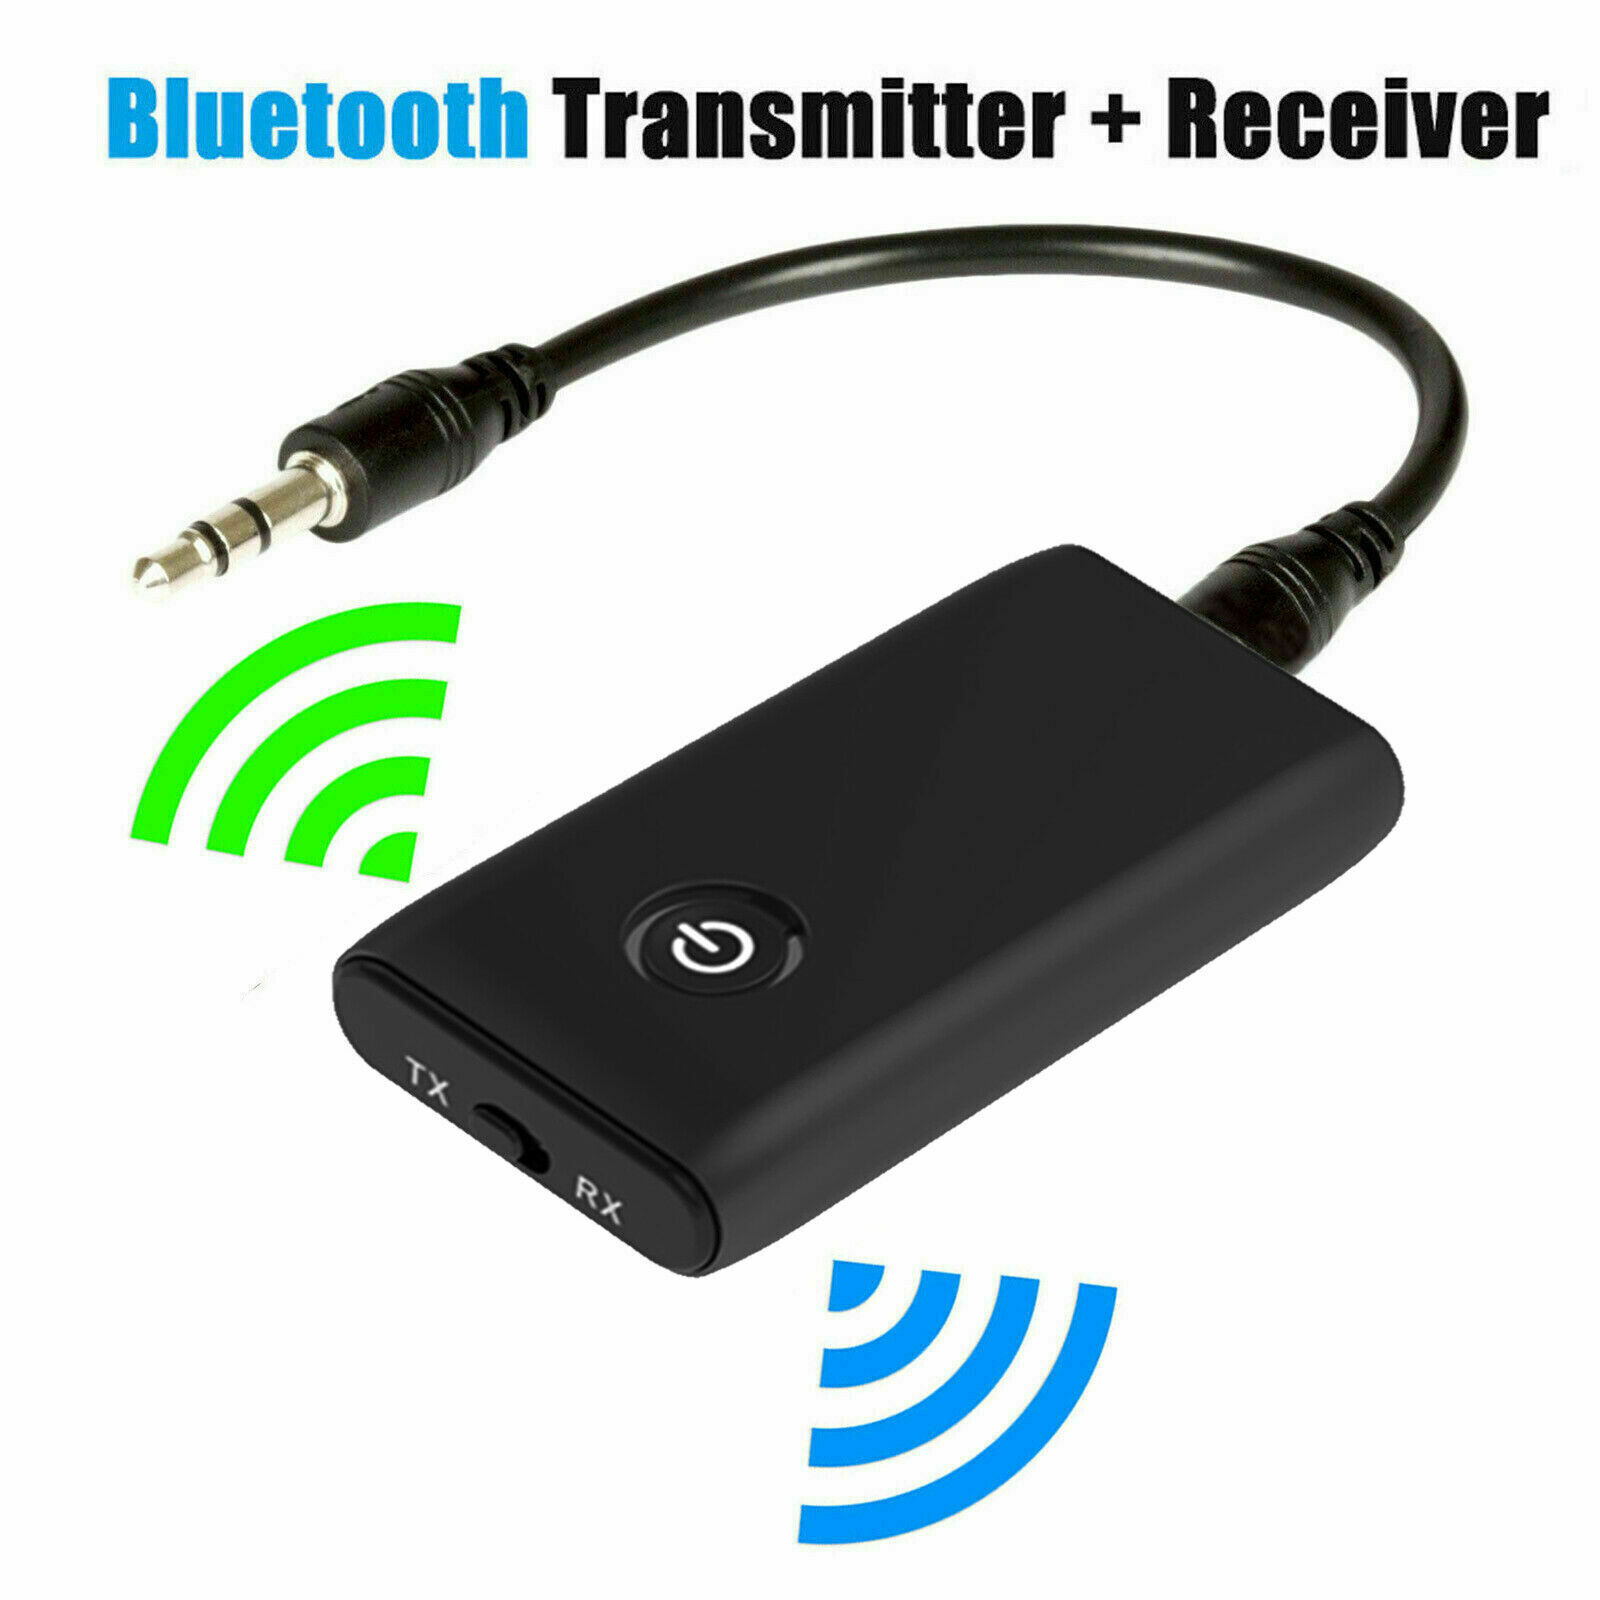 Bluetooth 5.0 Transmitter and Receiver 2-in-1 Wireless 3.5mm